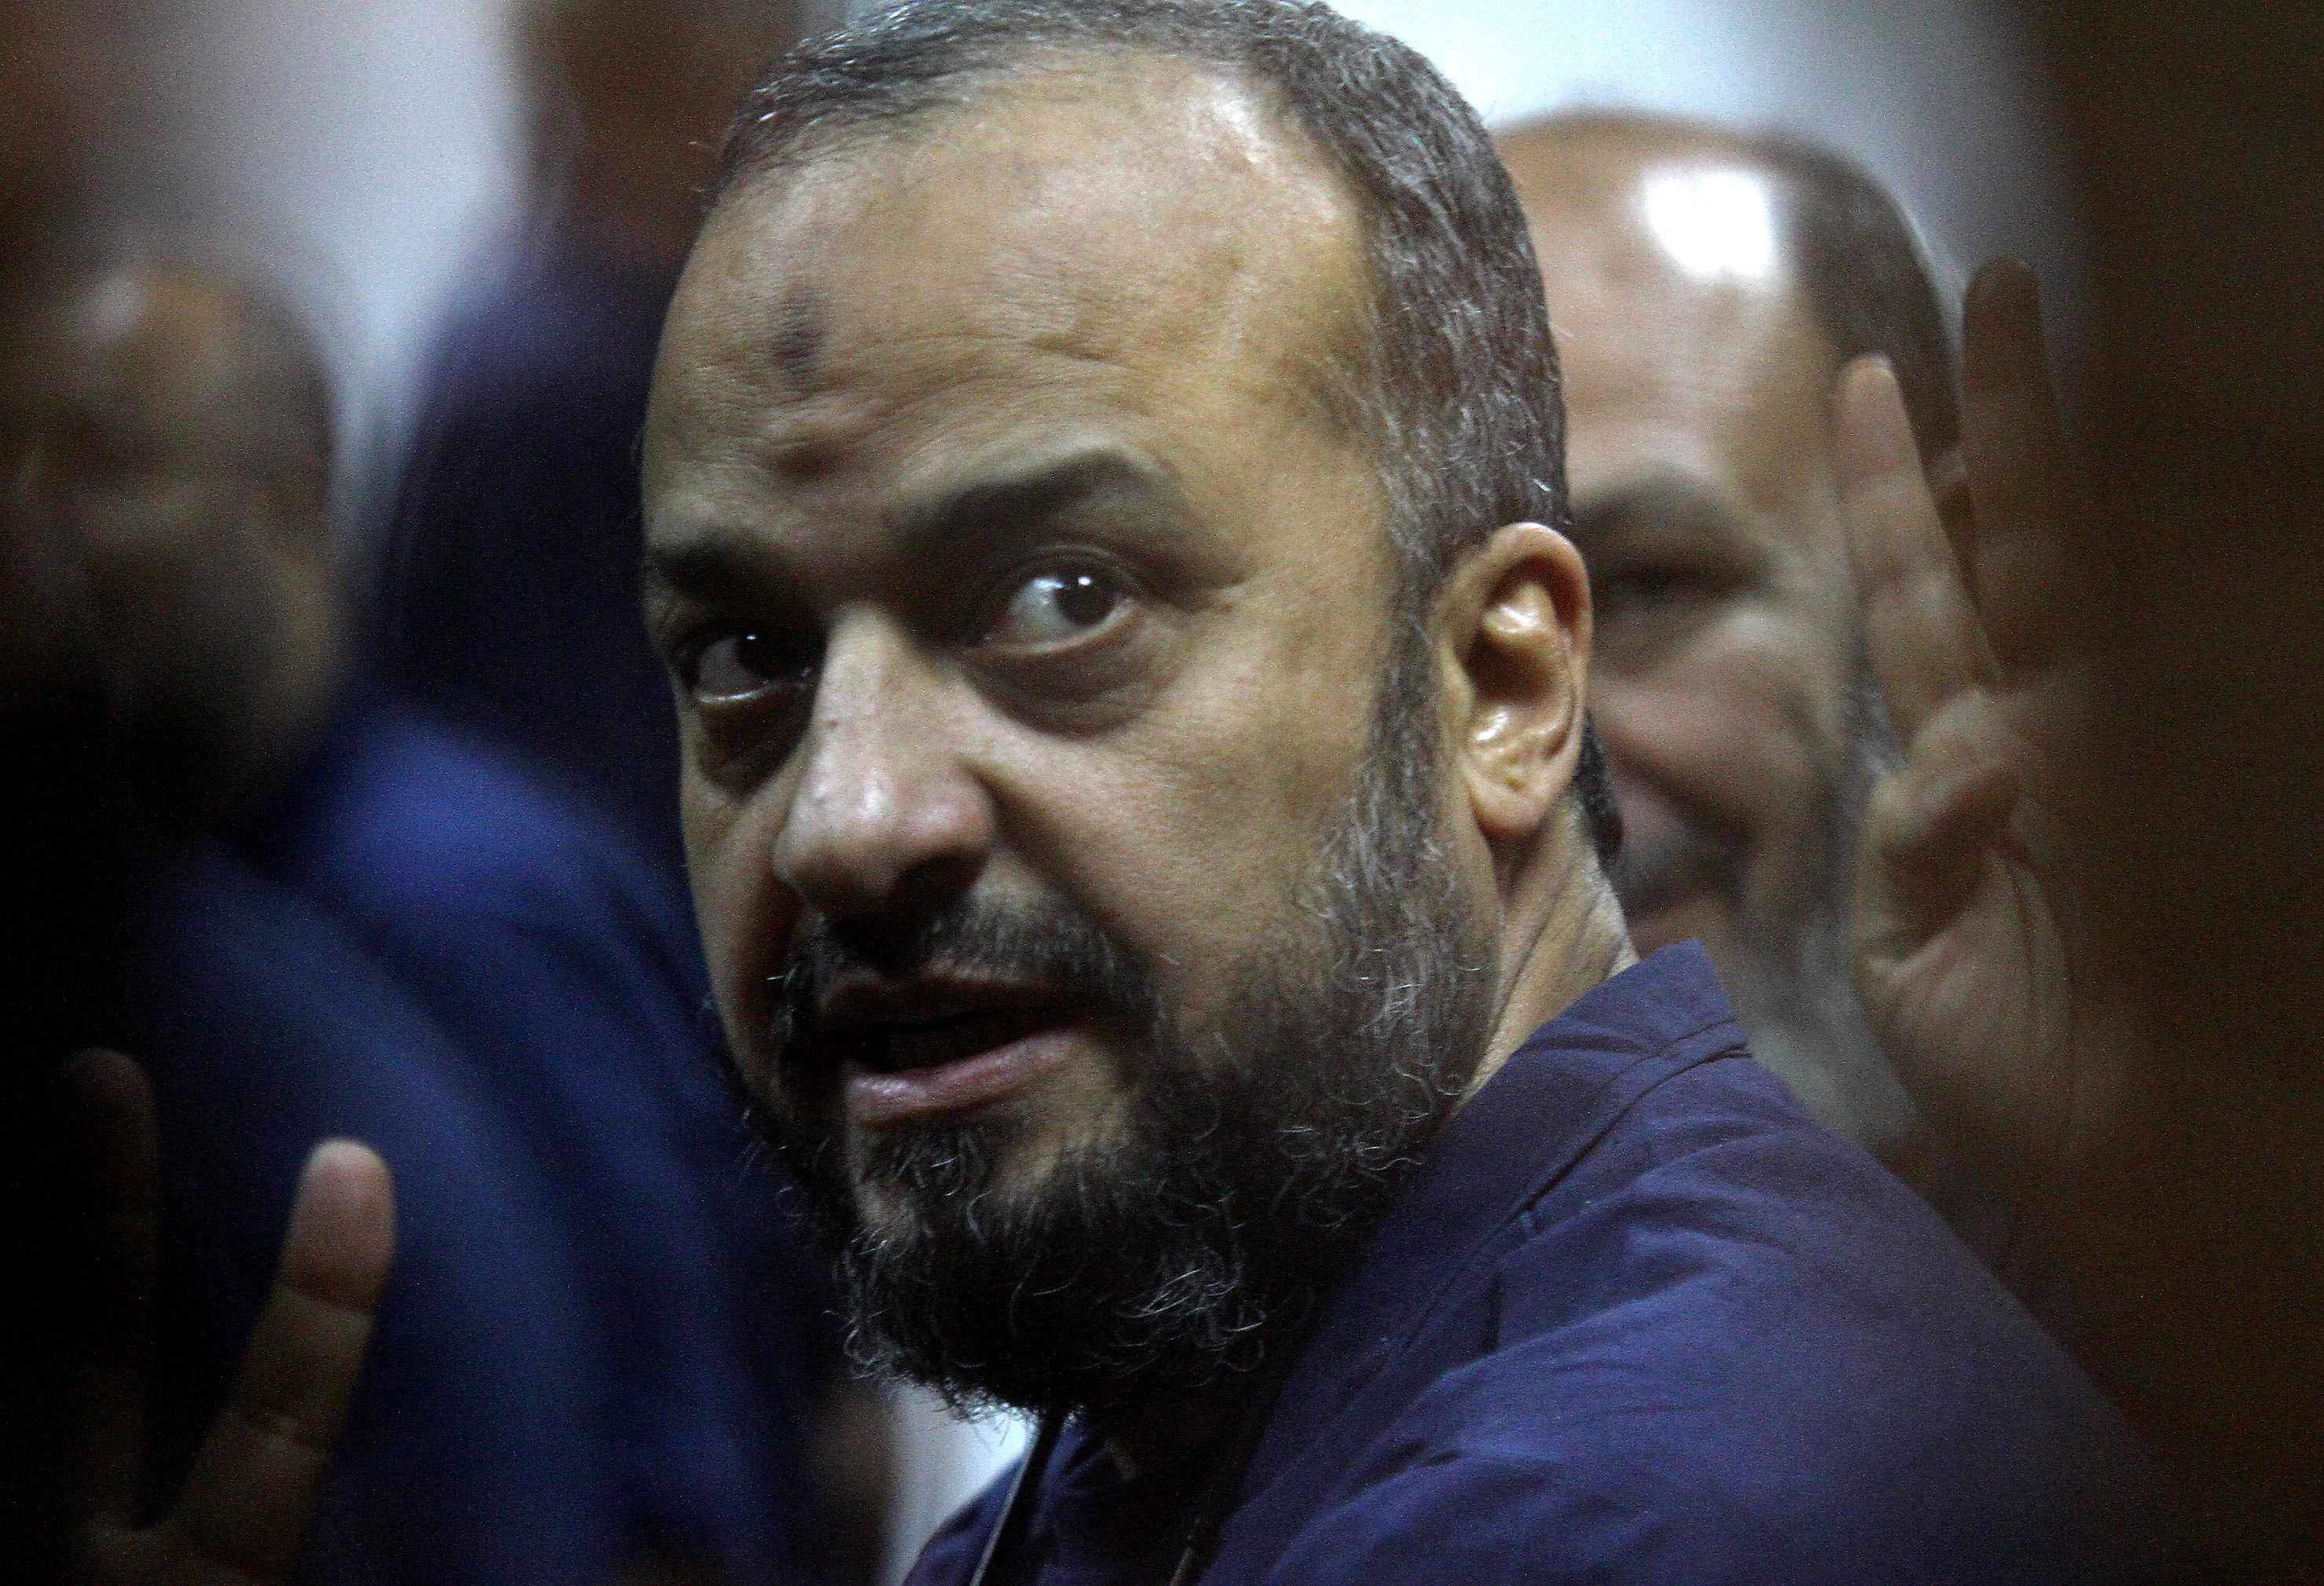 Egyptian Muslim Brotherhood politician Mohamed Al-Beltagy  (AFP PHOTO / TAREK EL-GABASS)